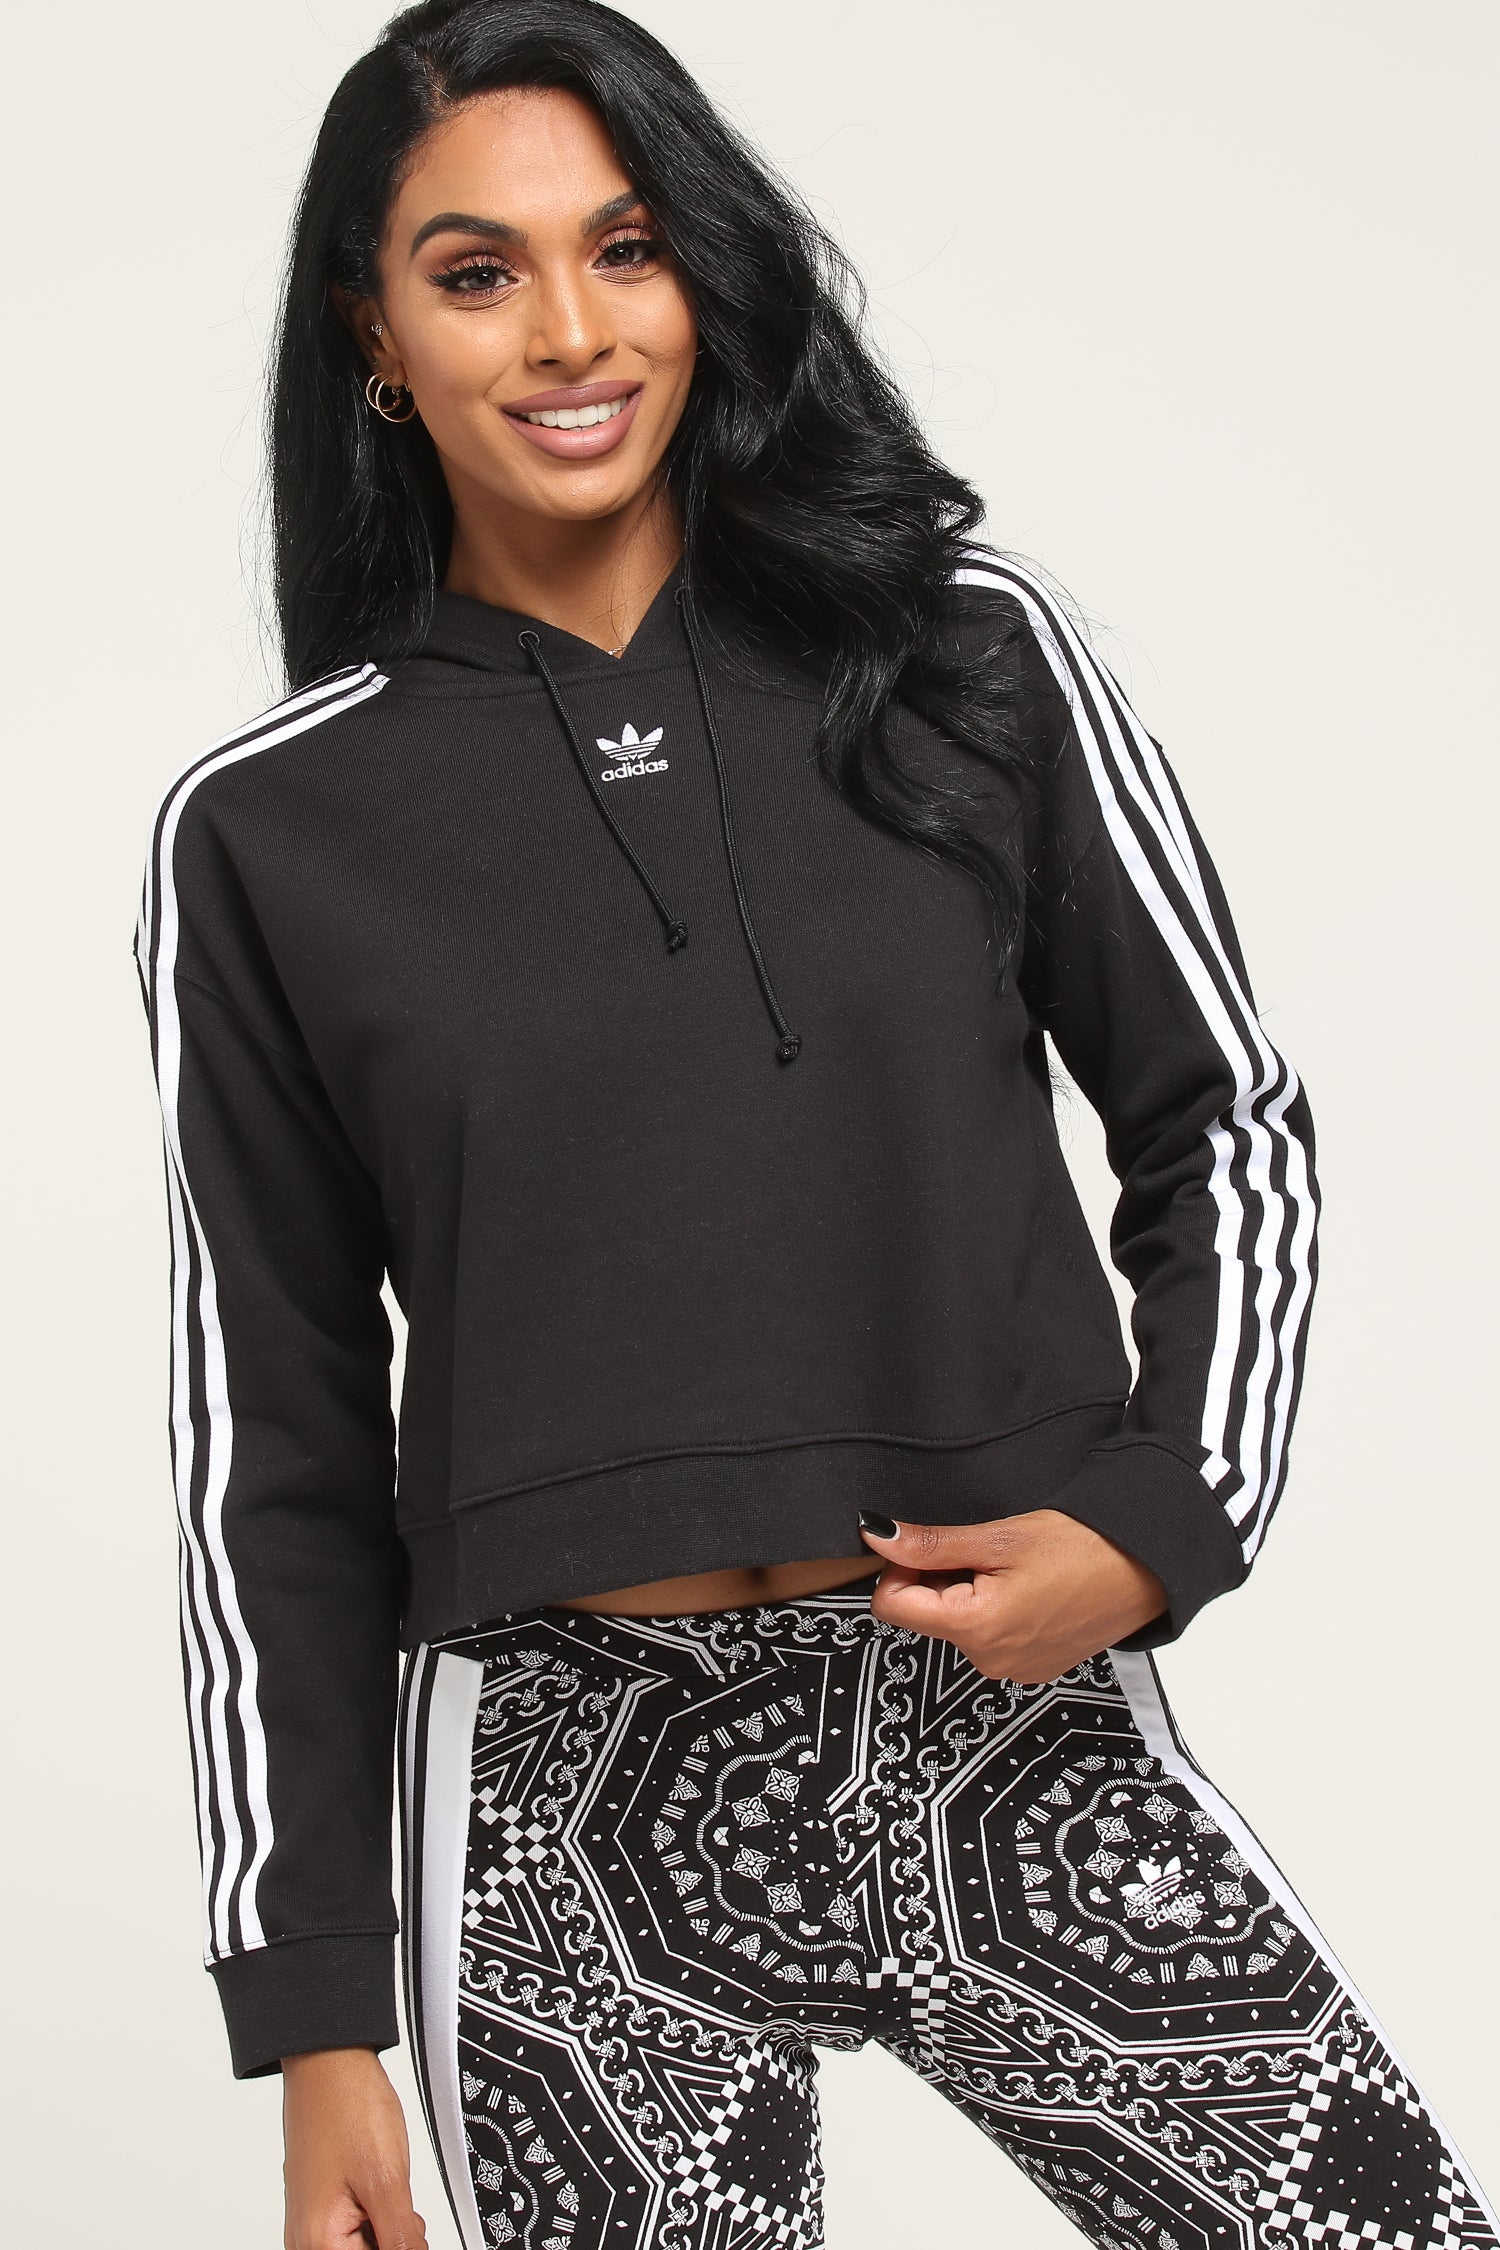 Adidas cropped hoodie black and white with classic Depop